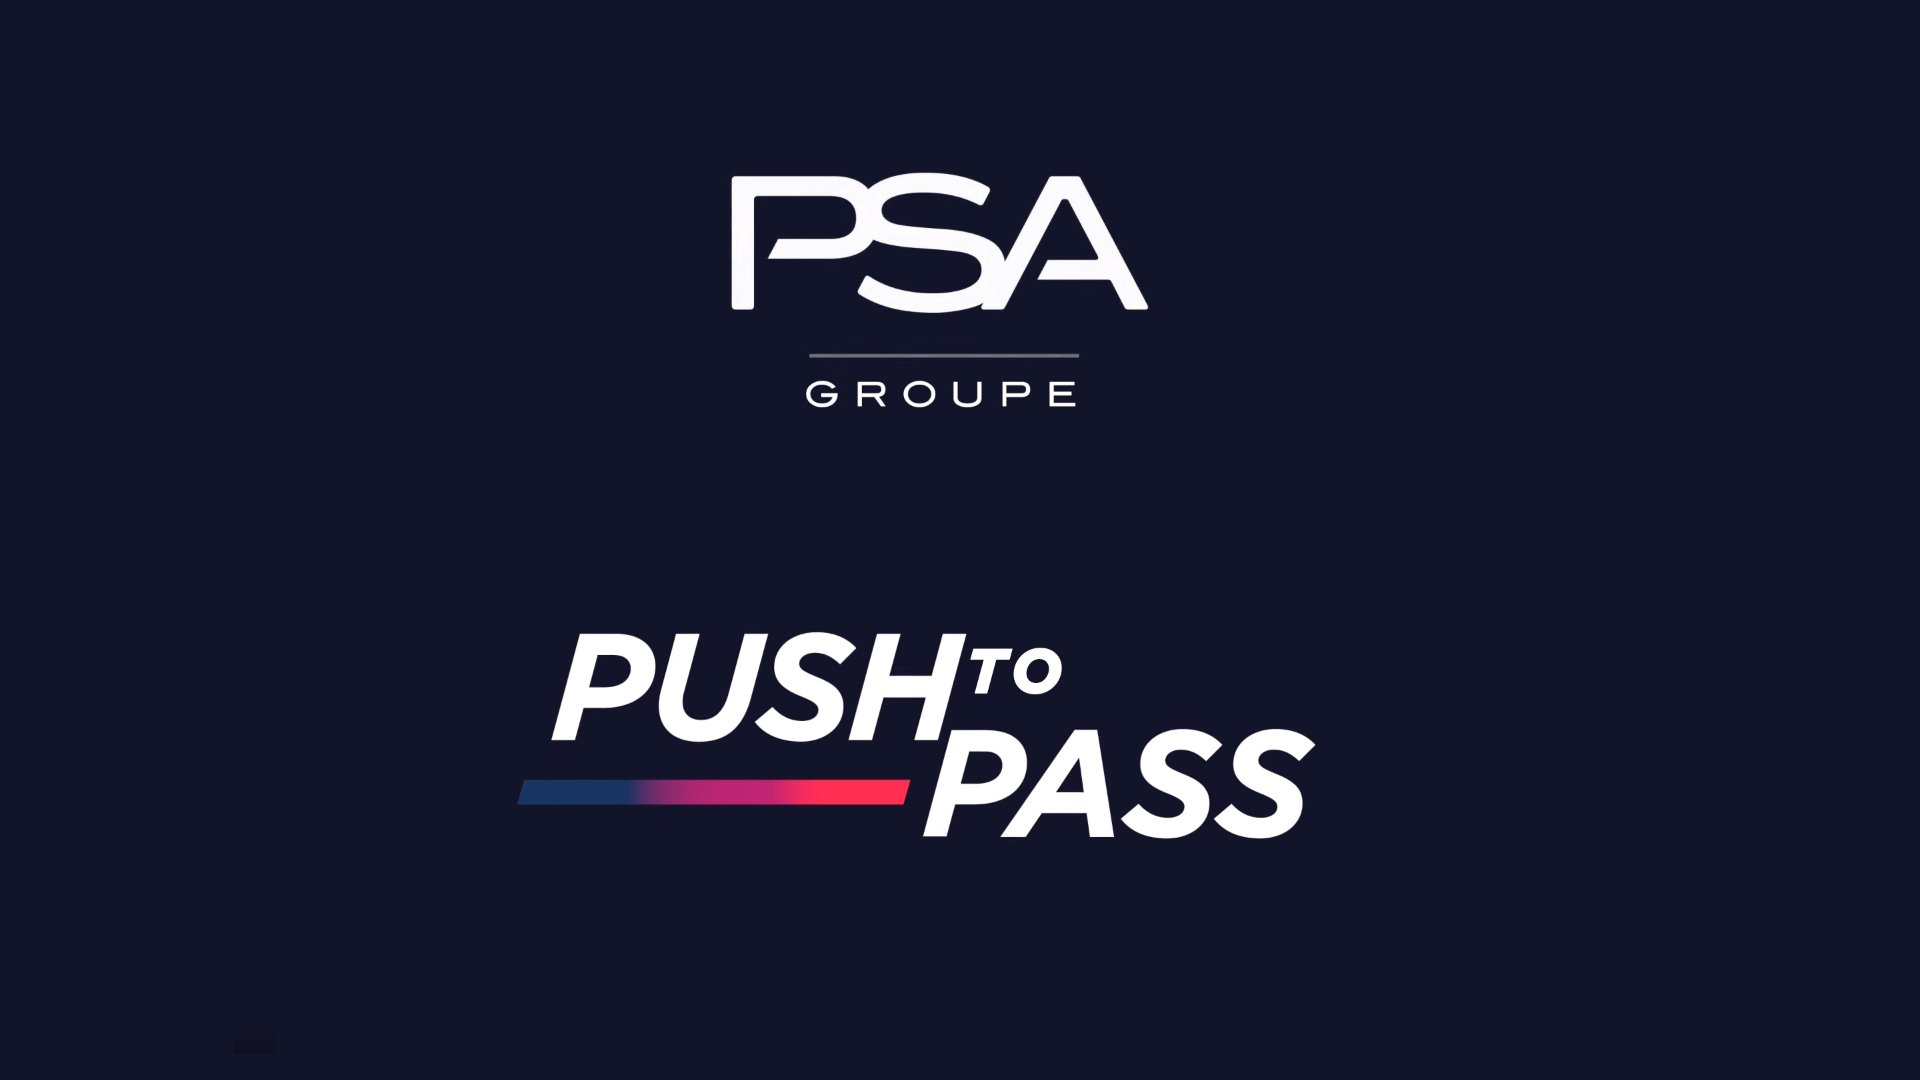 Groupe-PSA-Push-To-Pass